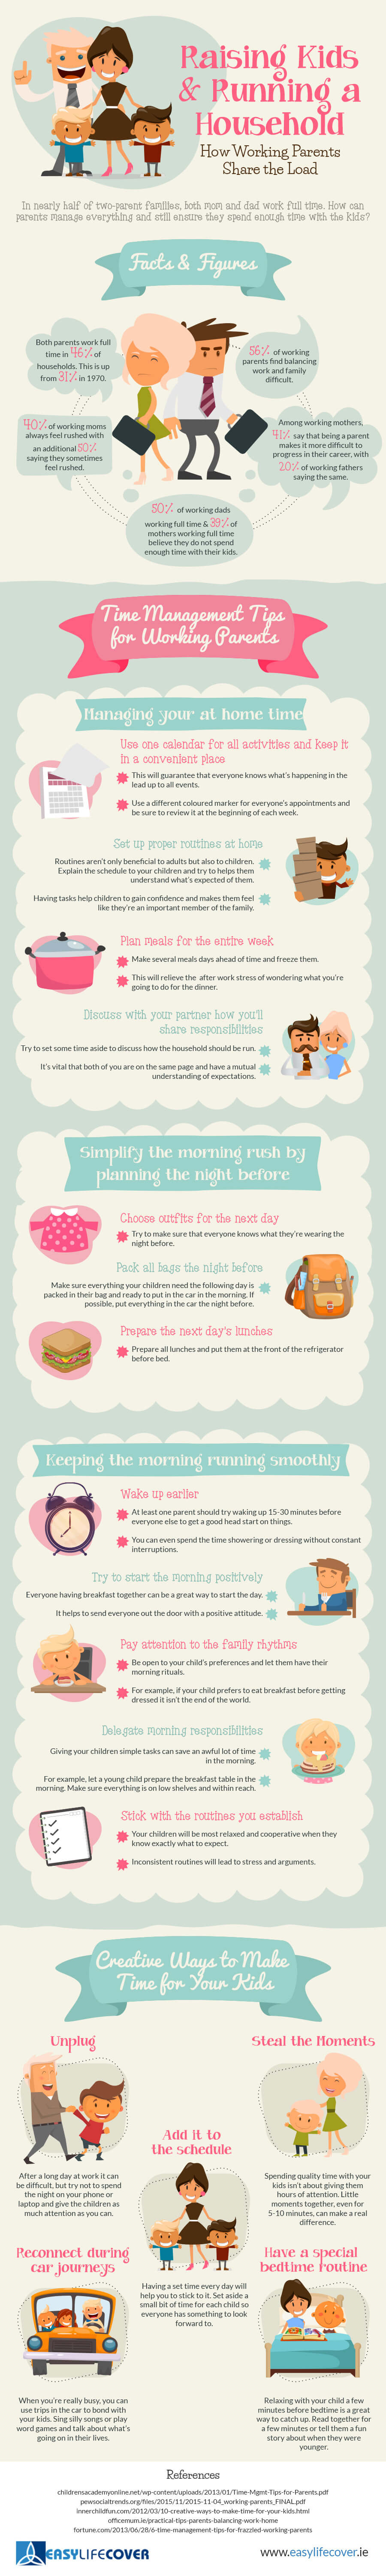 Raising-Kids-Running-a-Household-Infographic-plaza